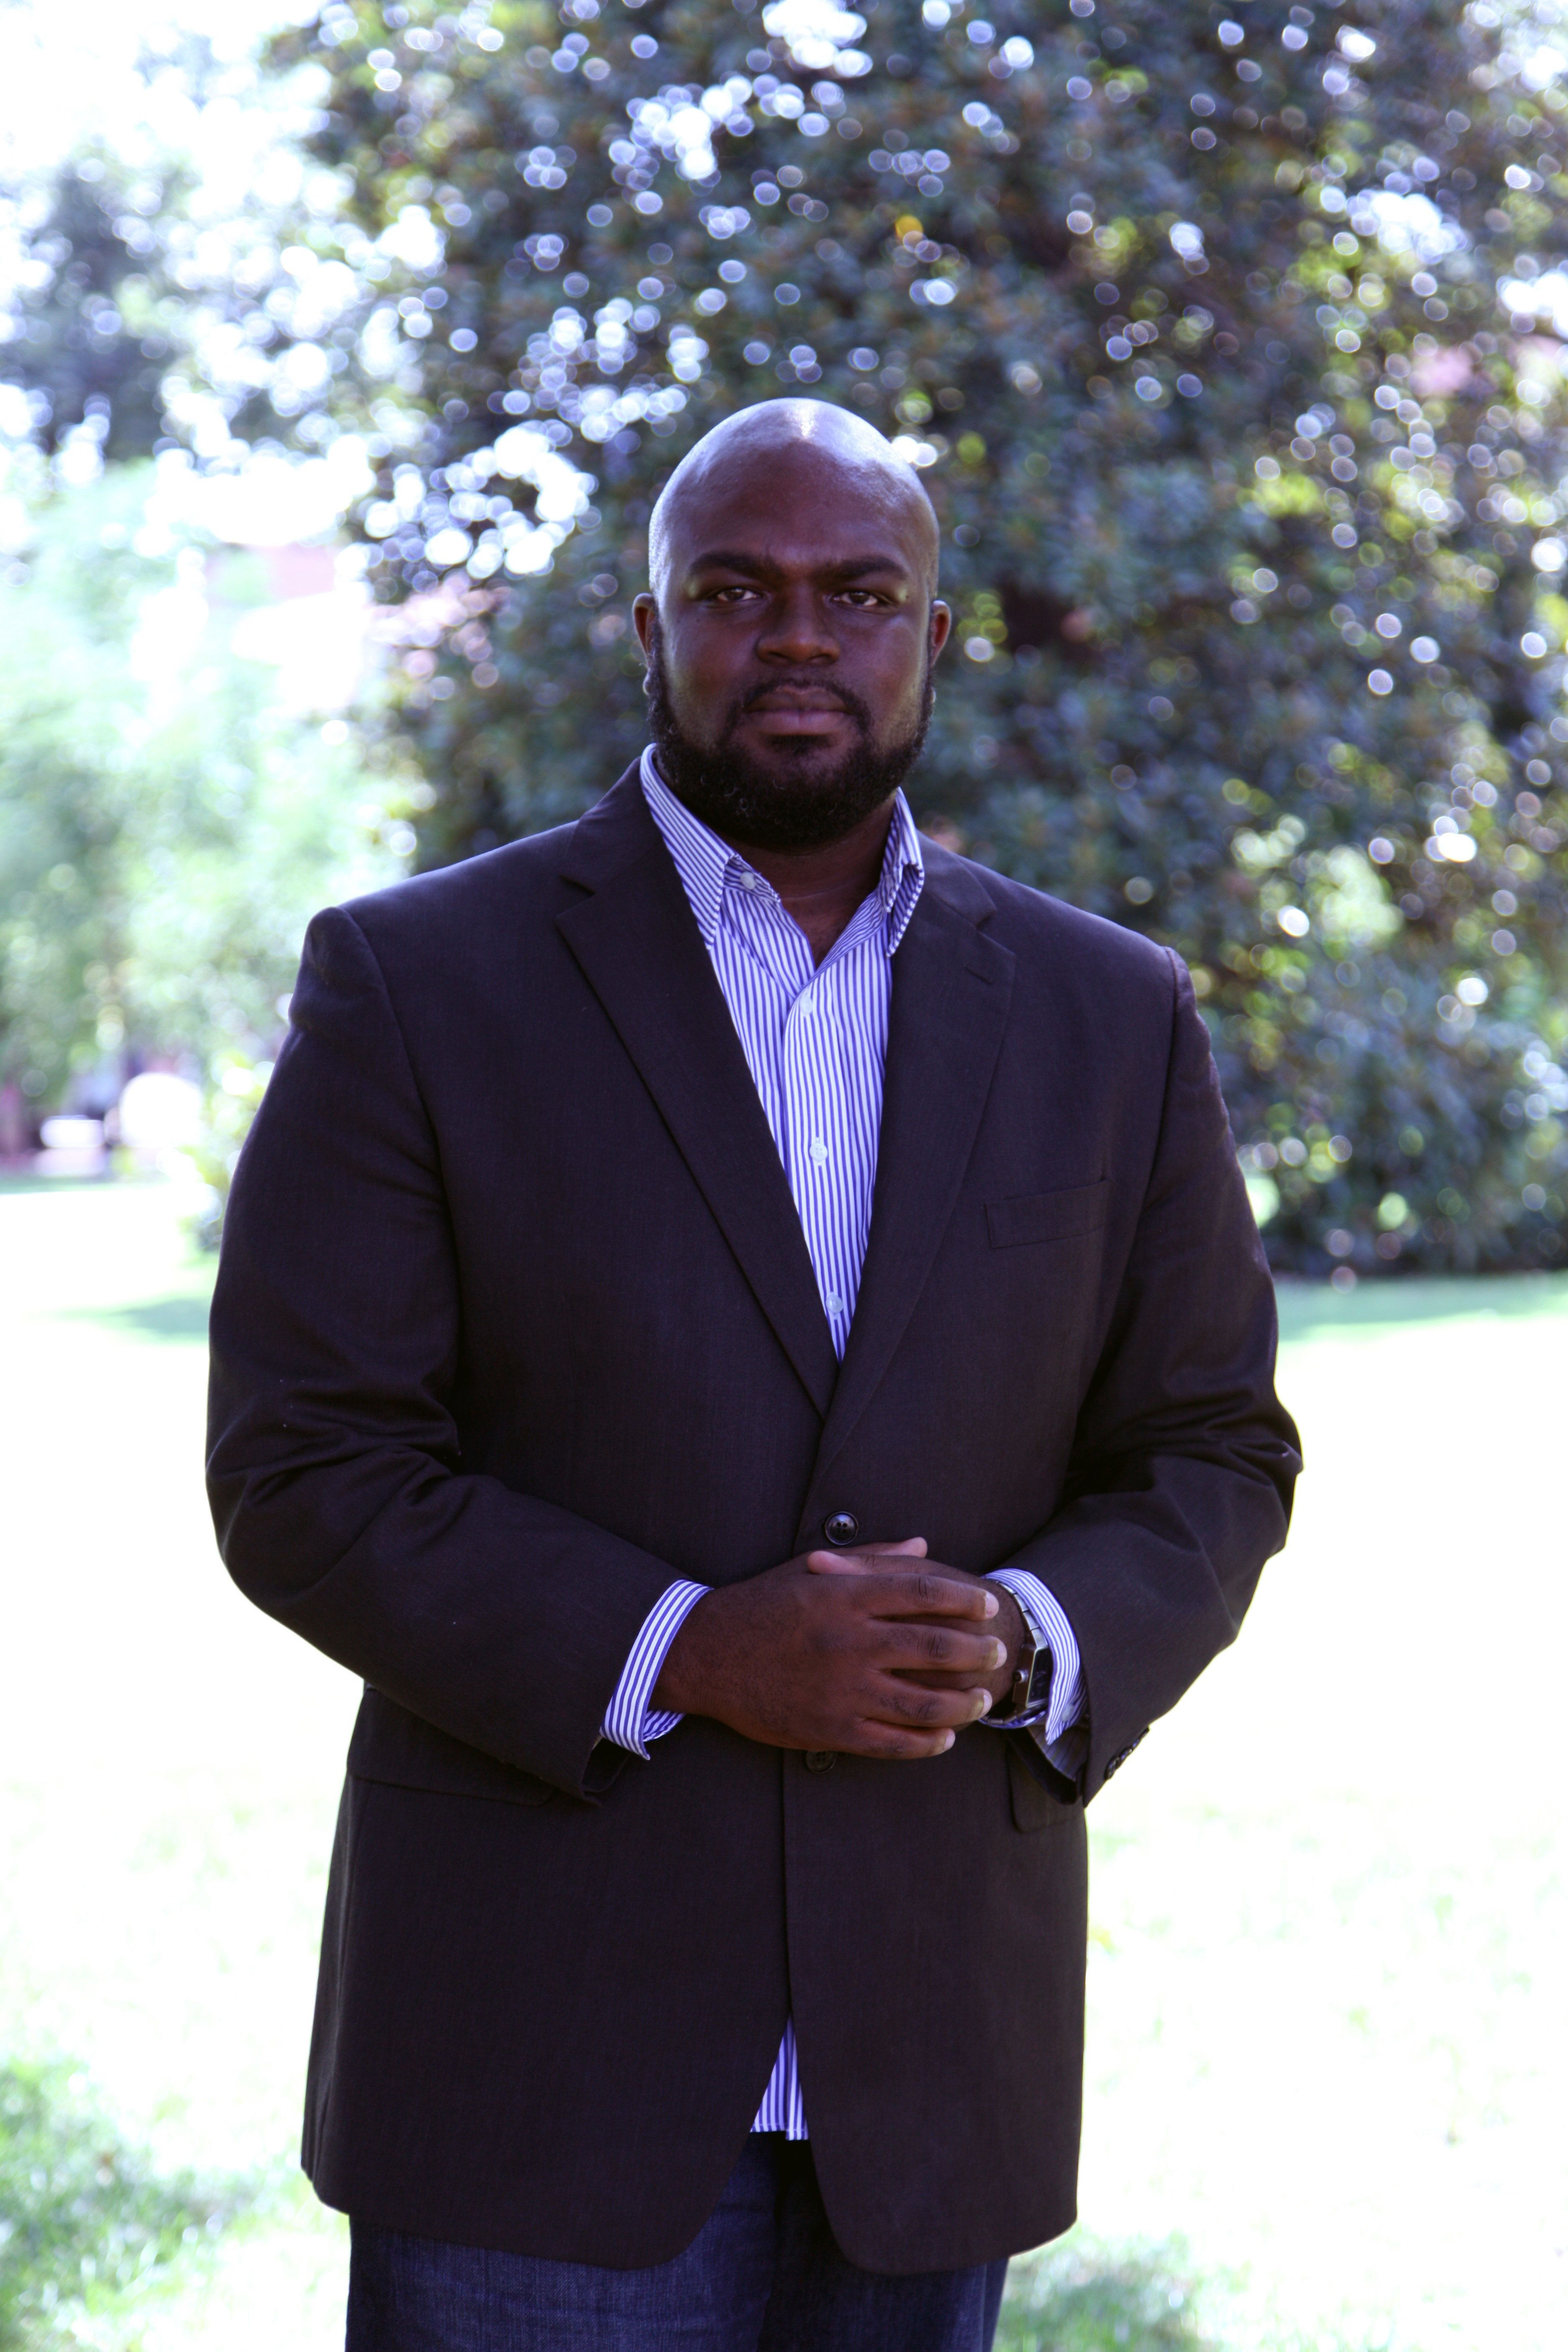 Lawrence Ware is the co-director of the Center for Africana Studies at Oklahoma State University.